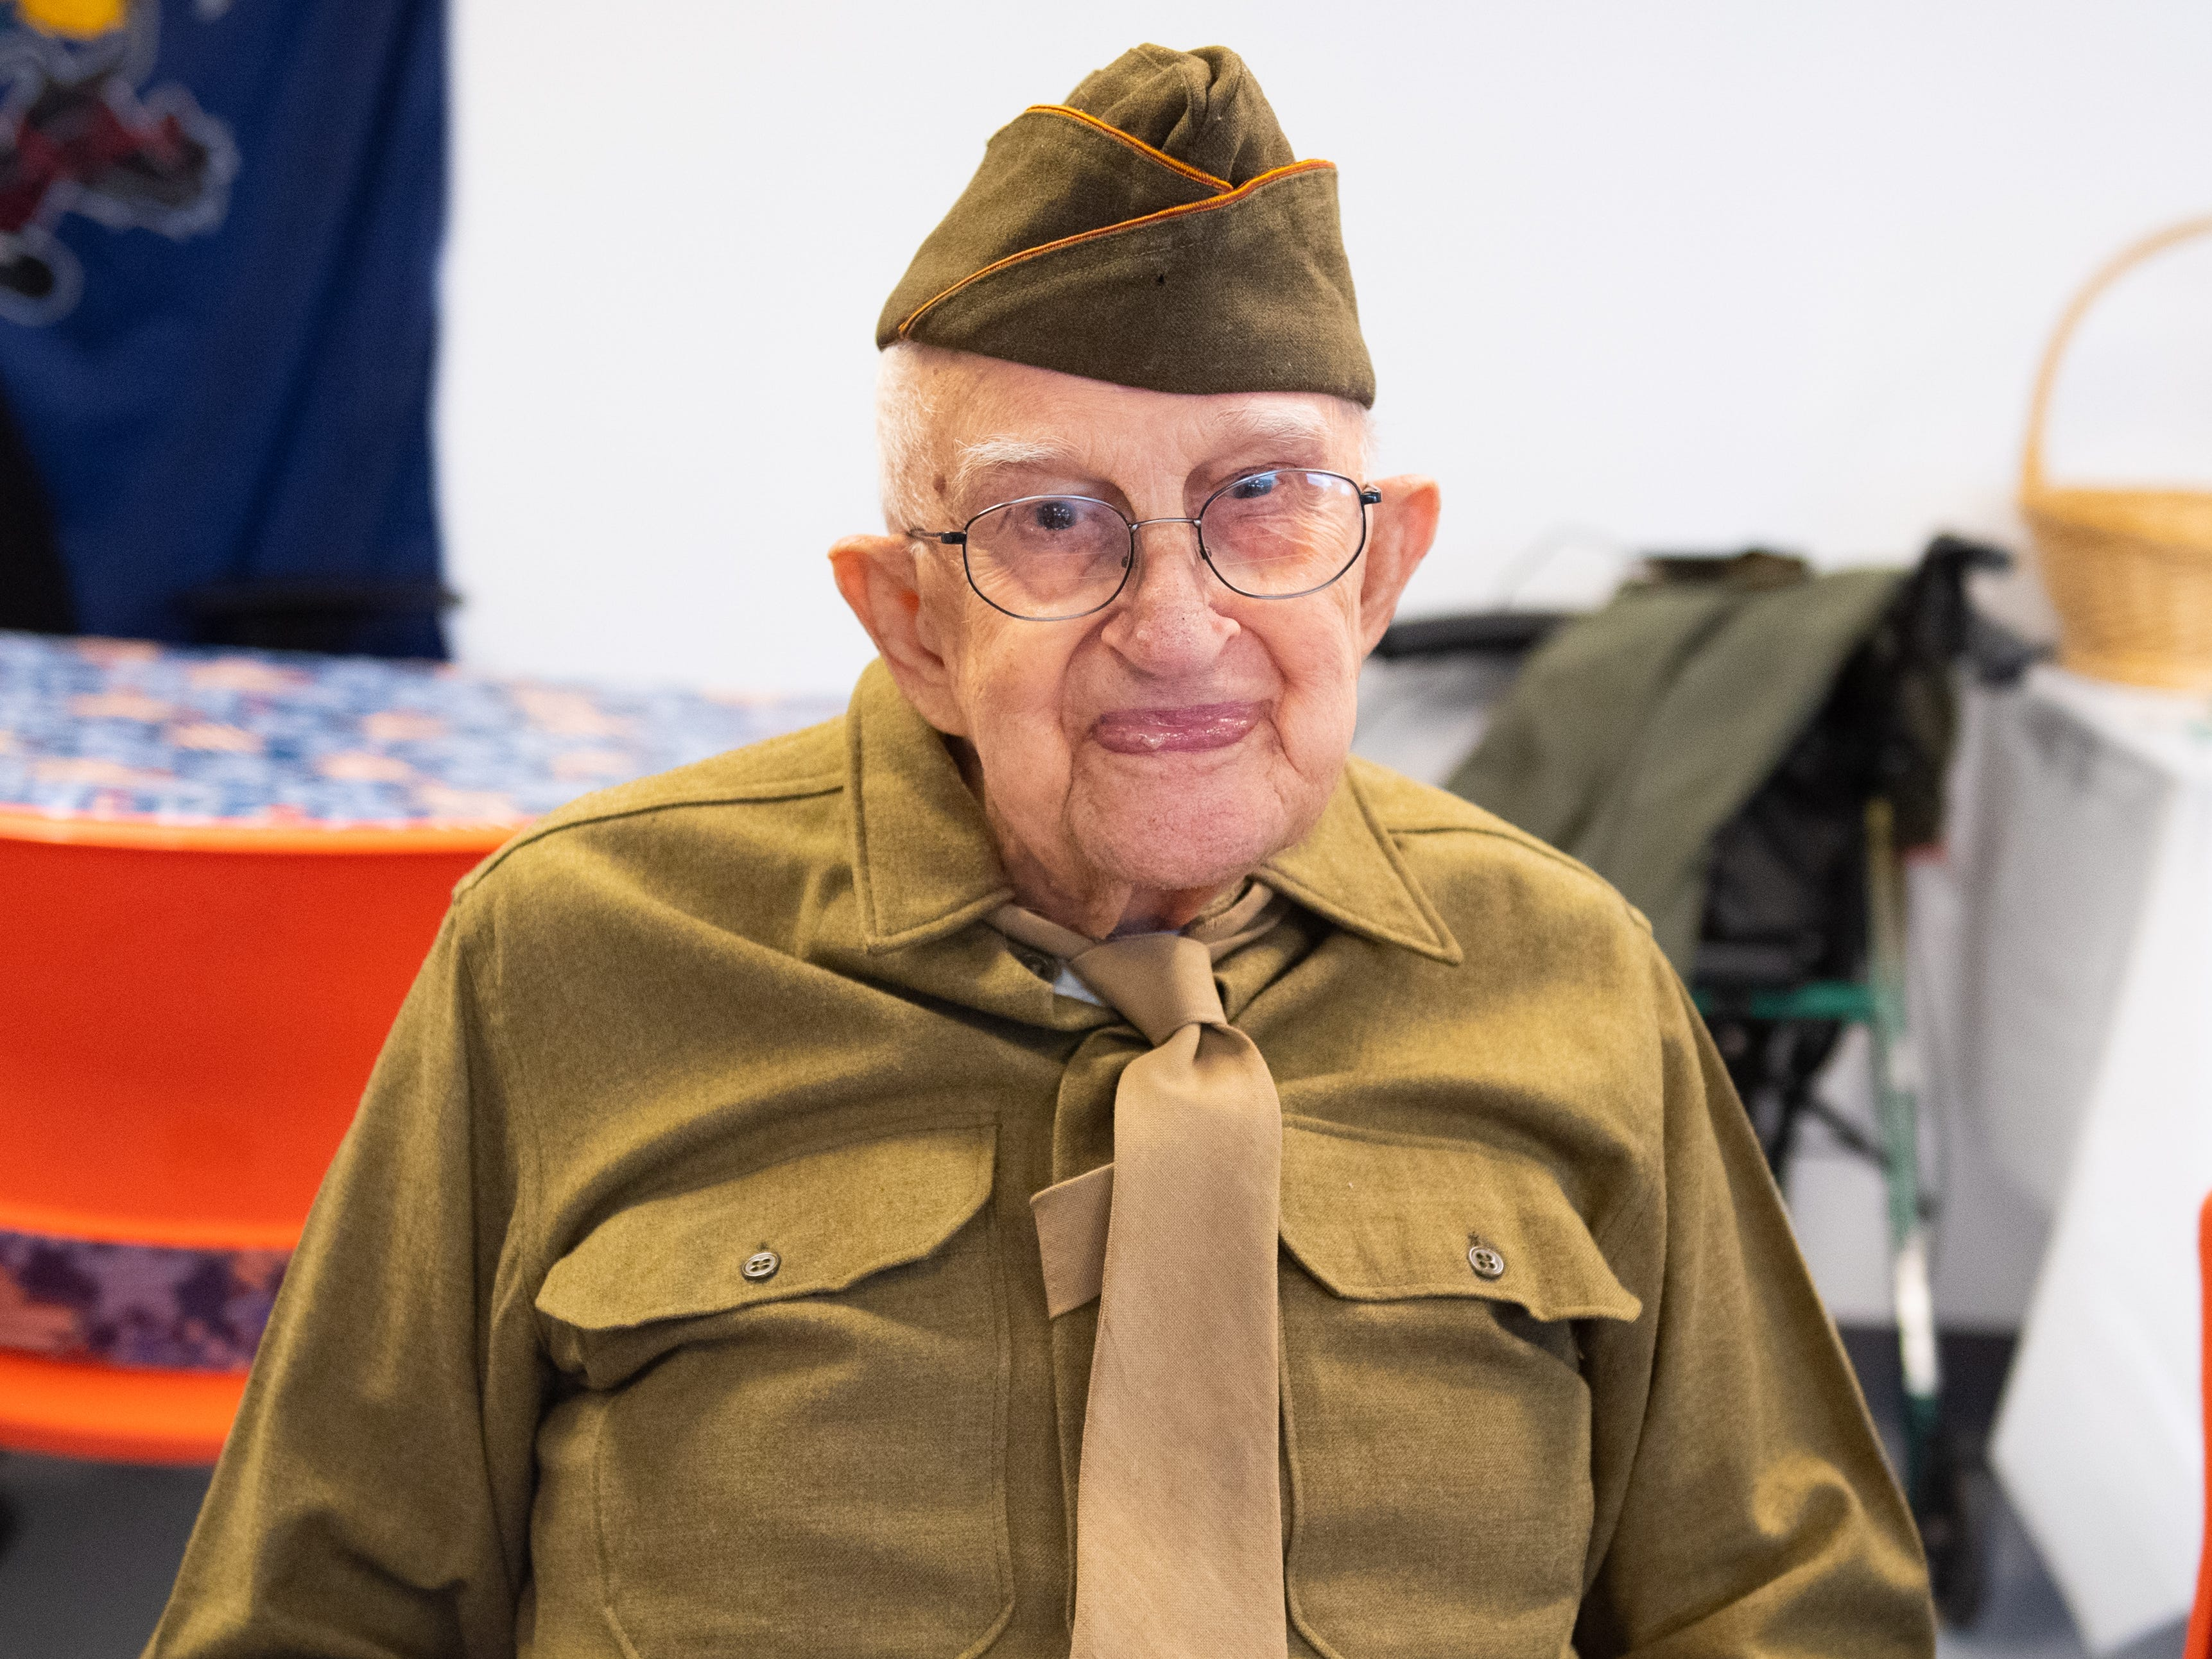 Robert Bush, 101, was the oldest veteran to attend the luncheon. The Country Meadows resident served in World War II and fought at the Battle of the Bulge. He wore his uniform with pride.